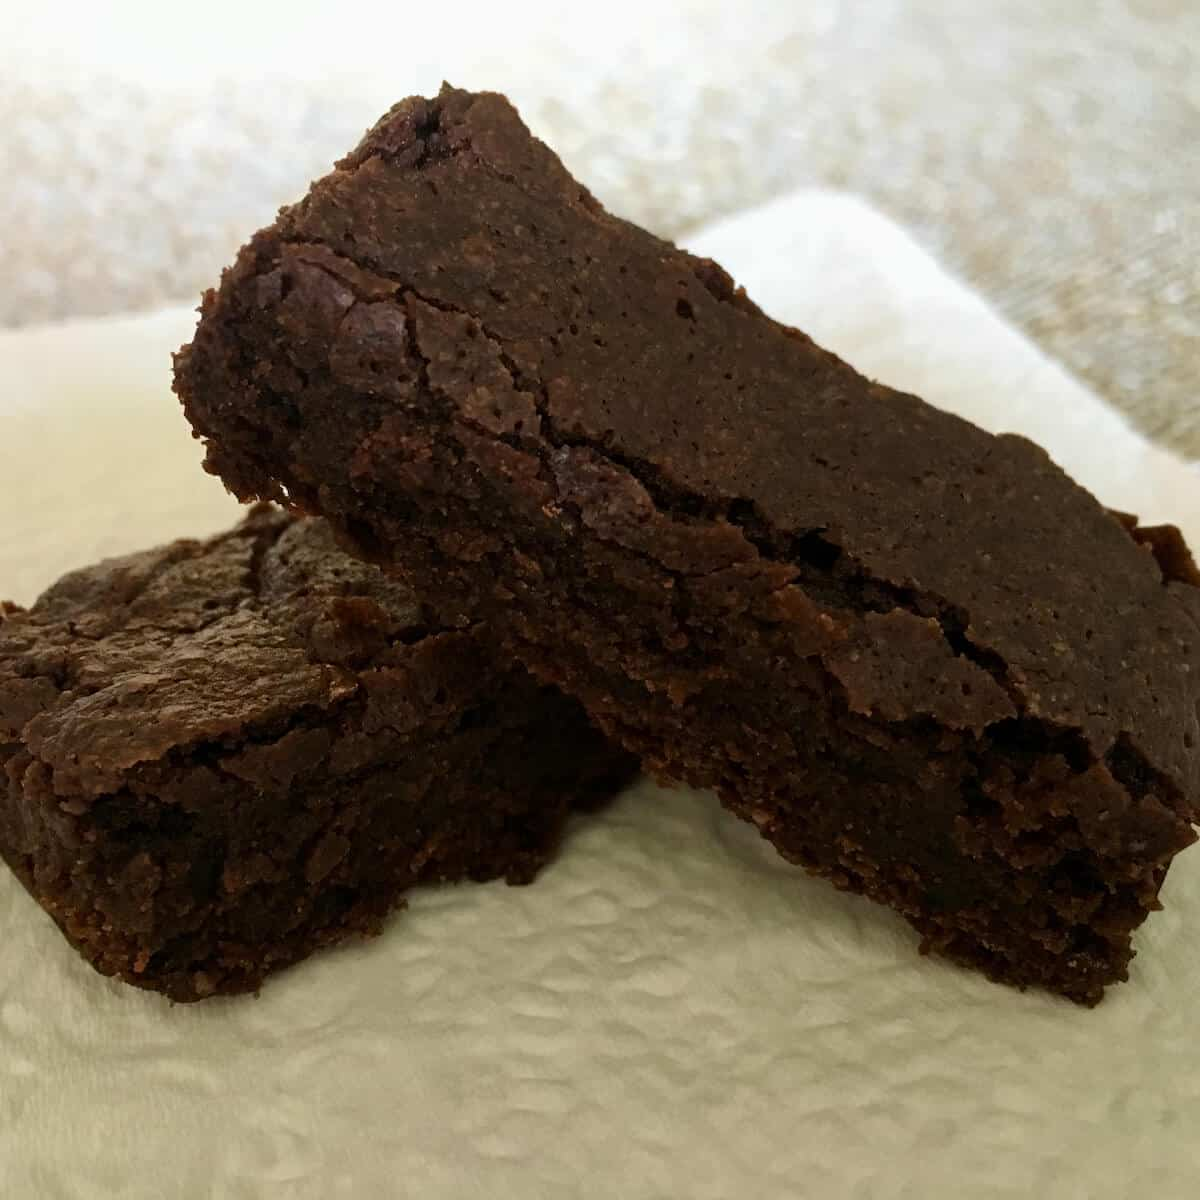 Two bourbon brownies stacked on a napkin.